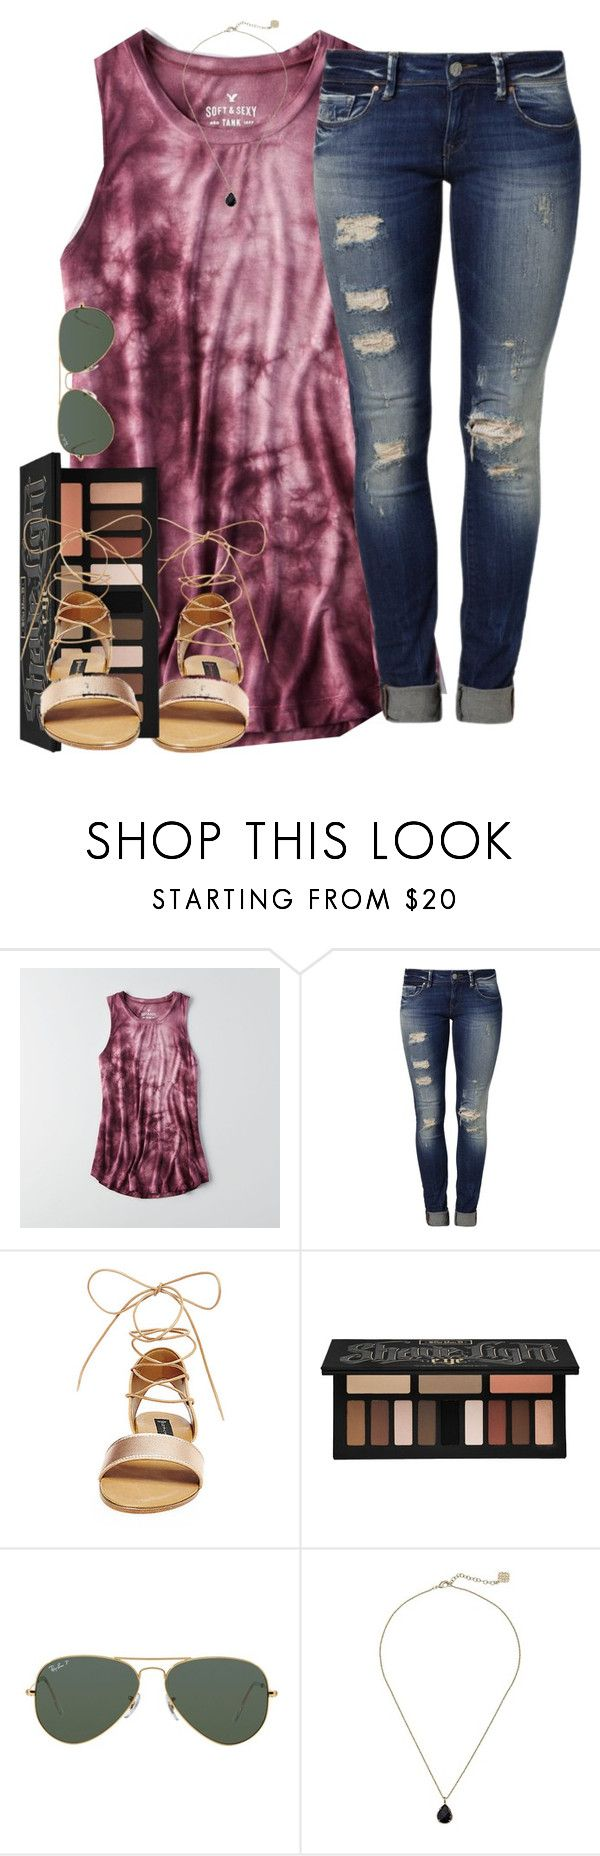 """""""Sunny and 75"""" by emmagracejoness ❤ liked on Polyvore featuring American Eagle Outfitters, Mavi, Steve Madden, Kat Von D, Ray-Ban and Kendra Scott"""